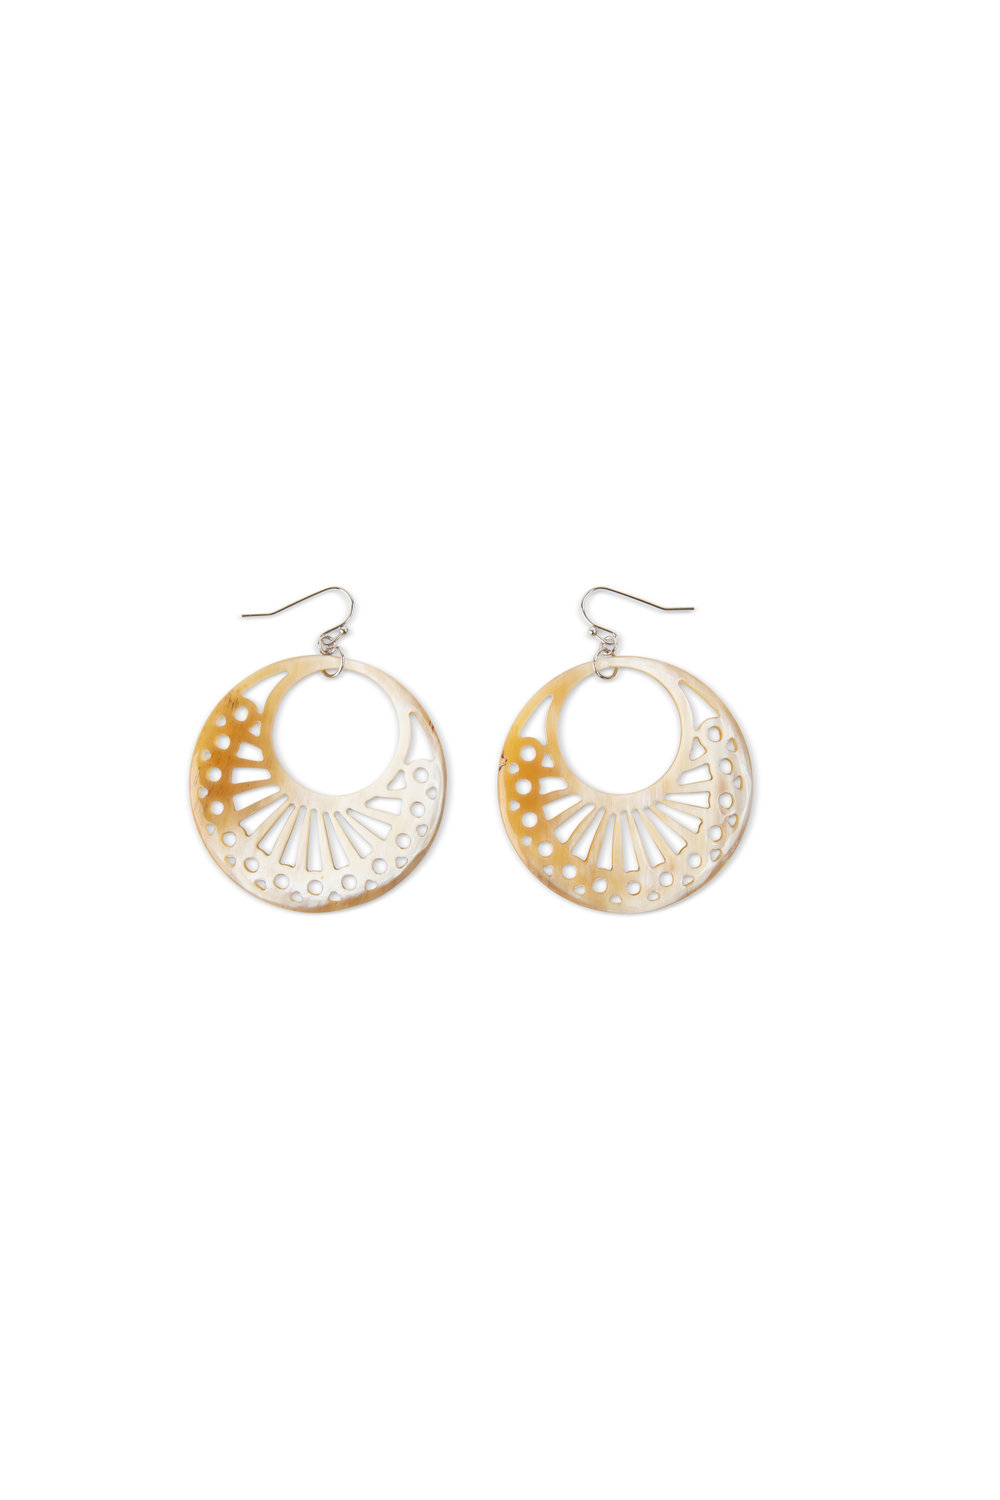 Filigree Hoops from Noonday Collection